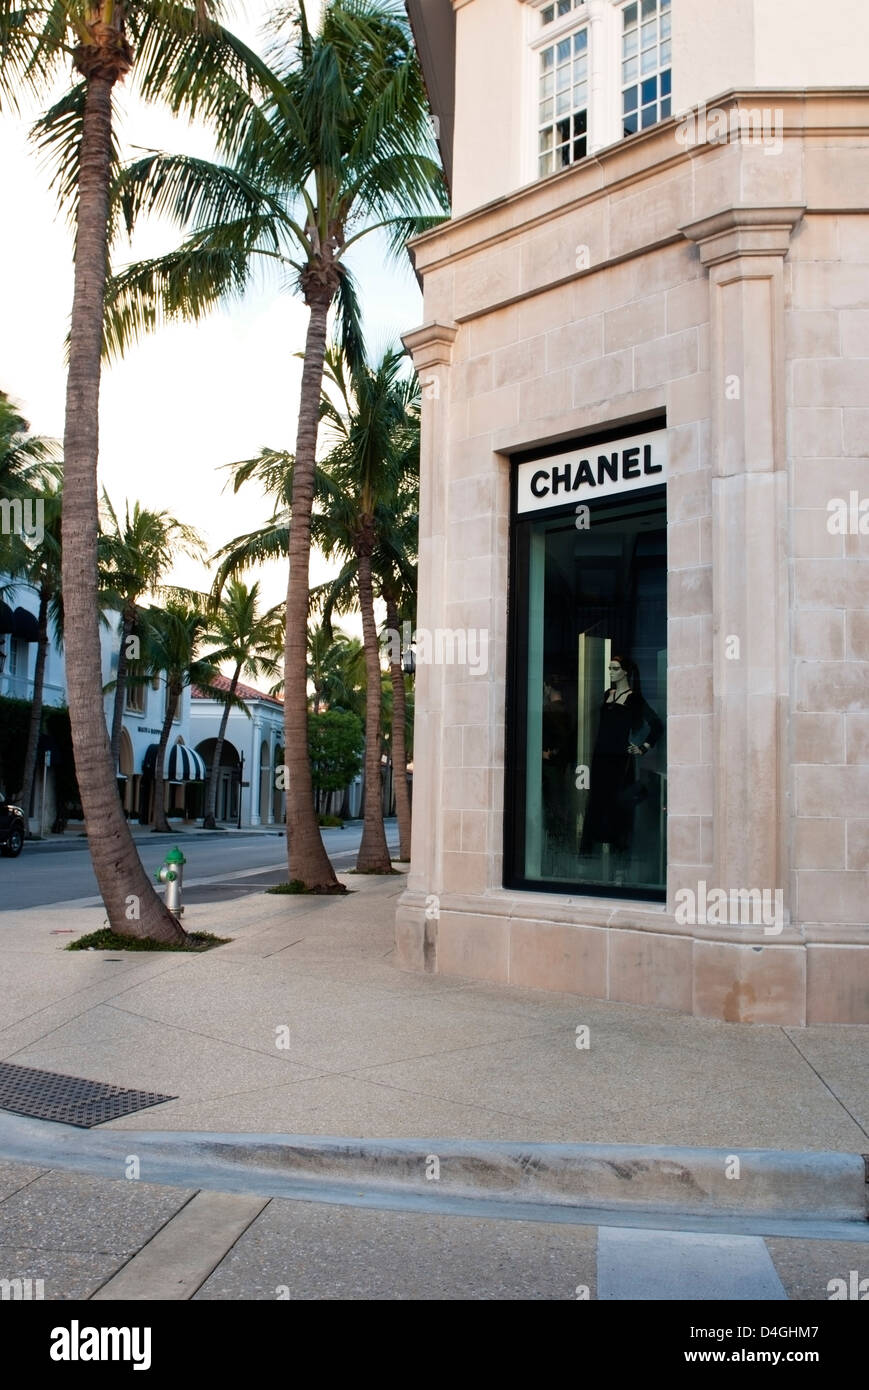 The Chanel store on Worth Avenue, West Palm Beach Florida - Stock Image